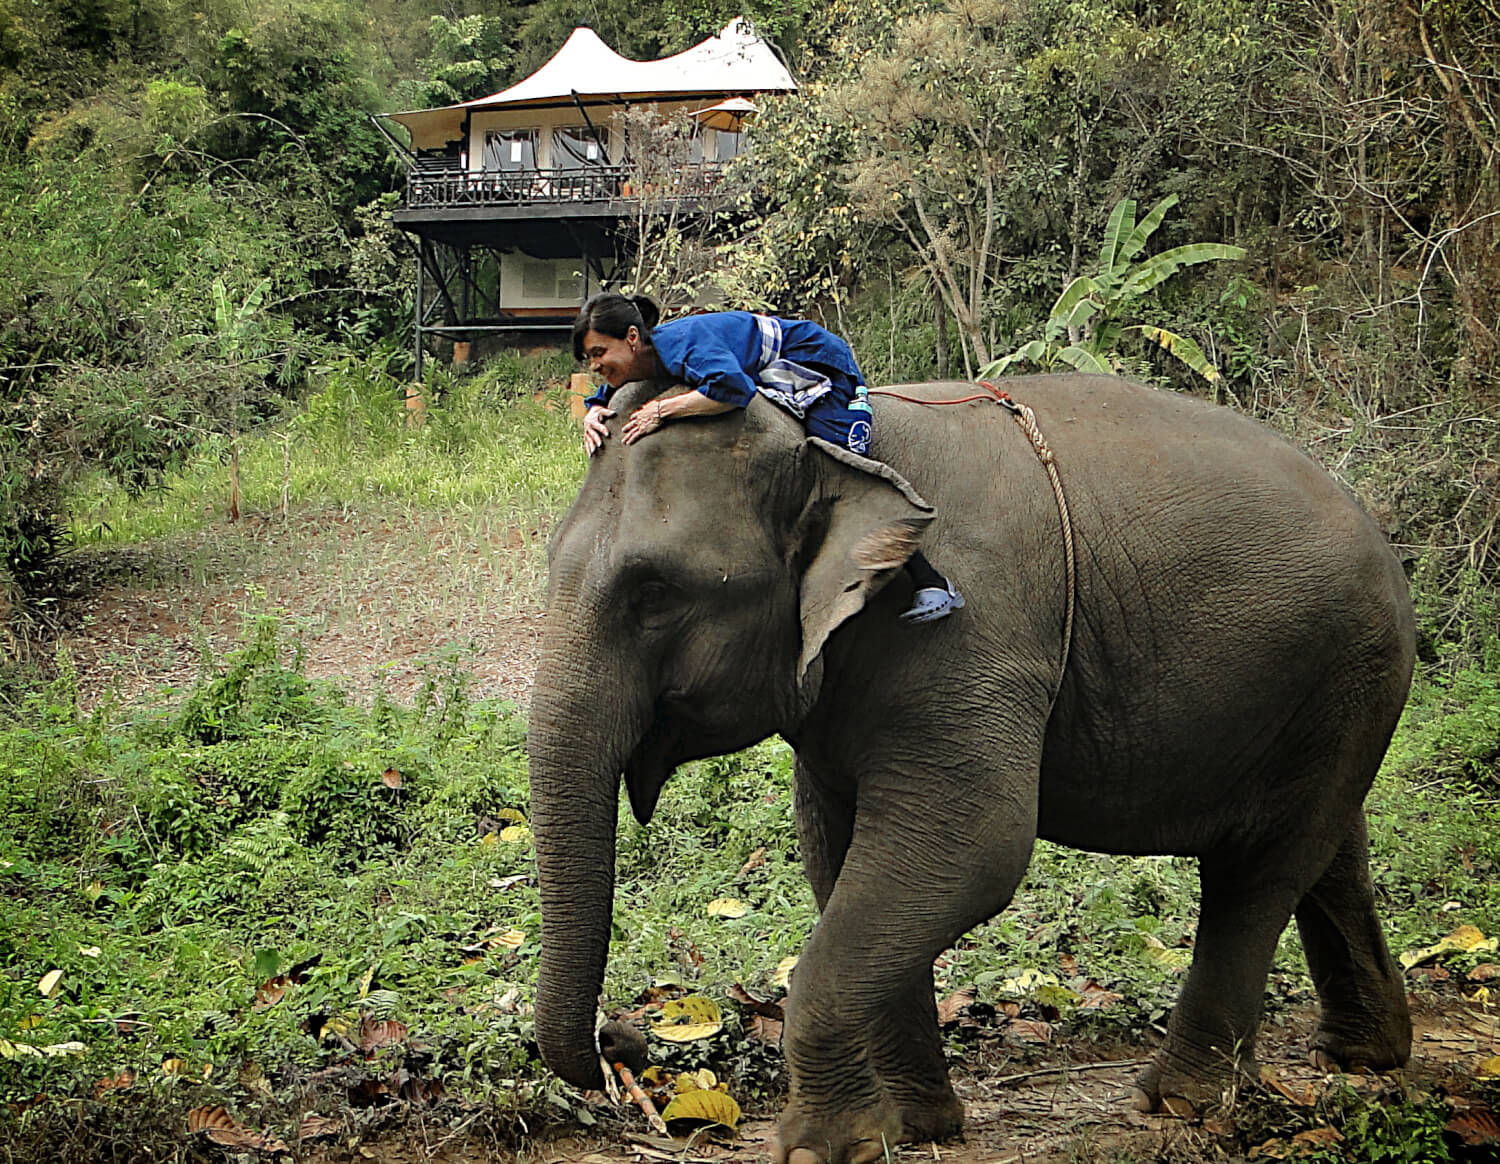 lady on elephant